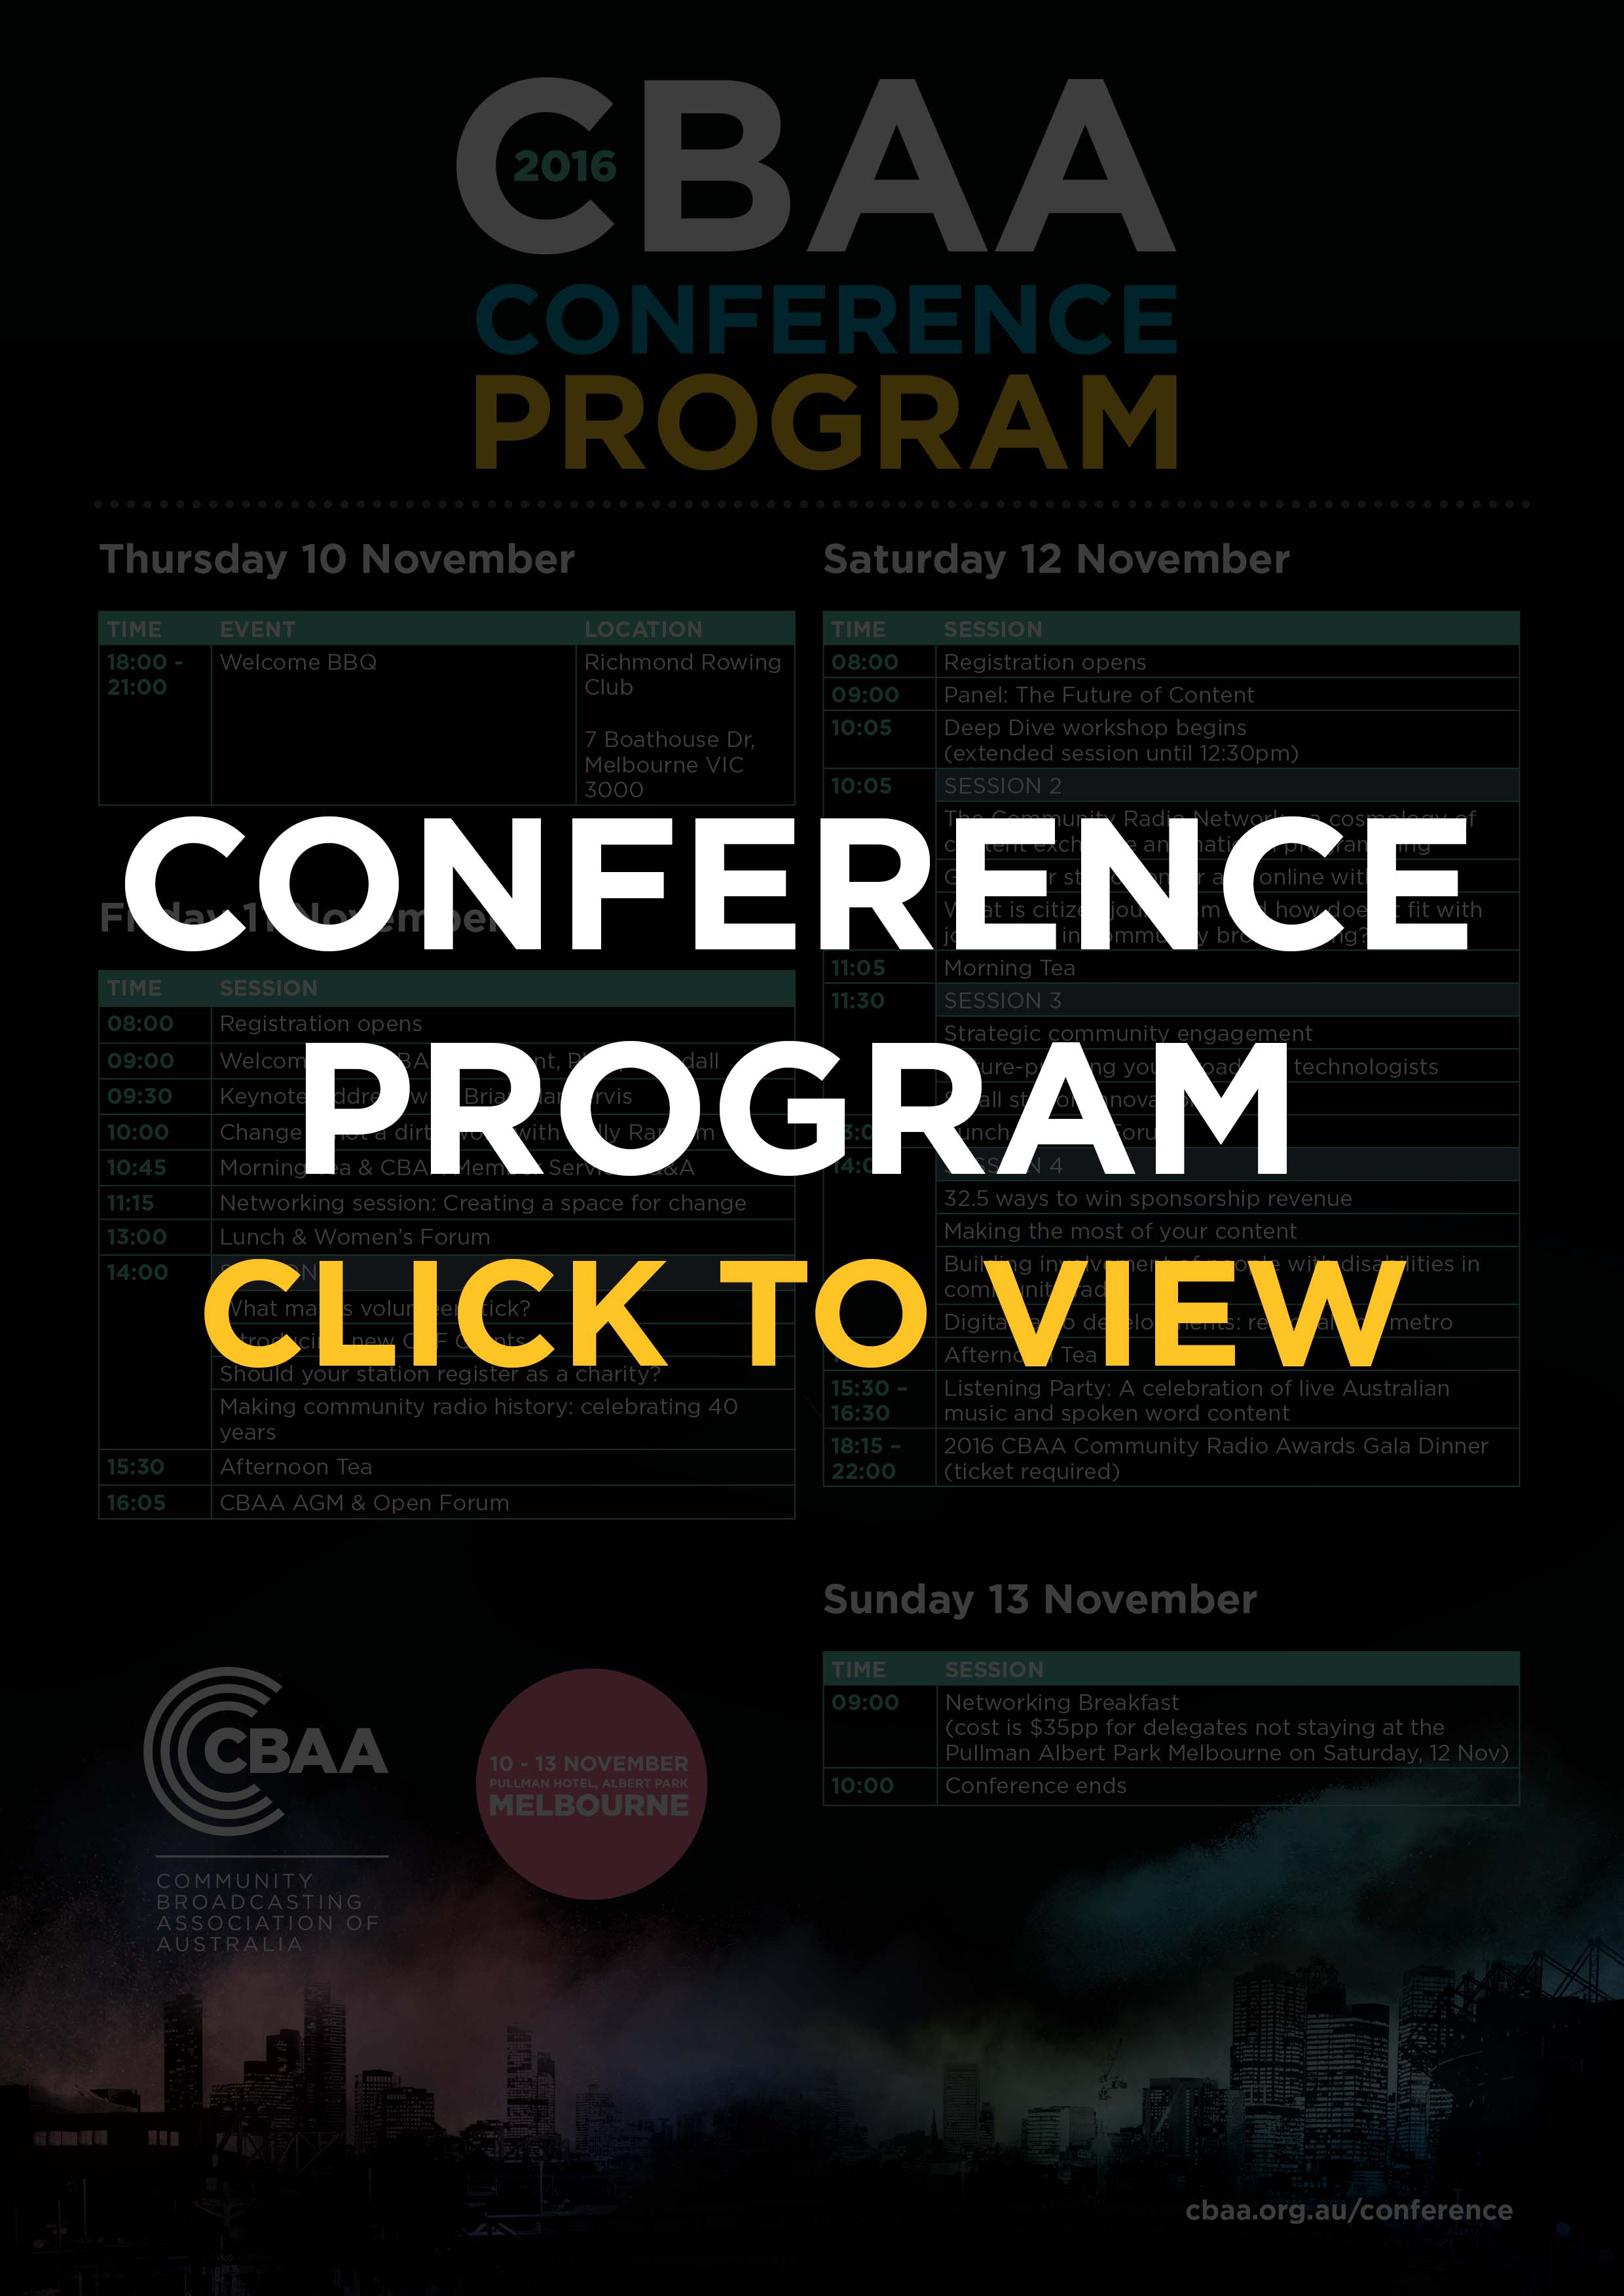 CBAA Conference Program Grid - click to view